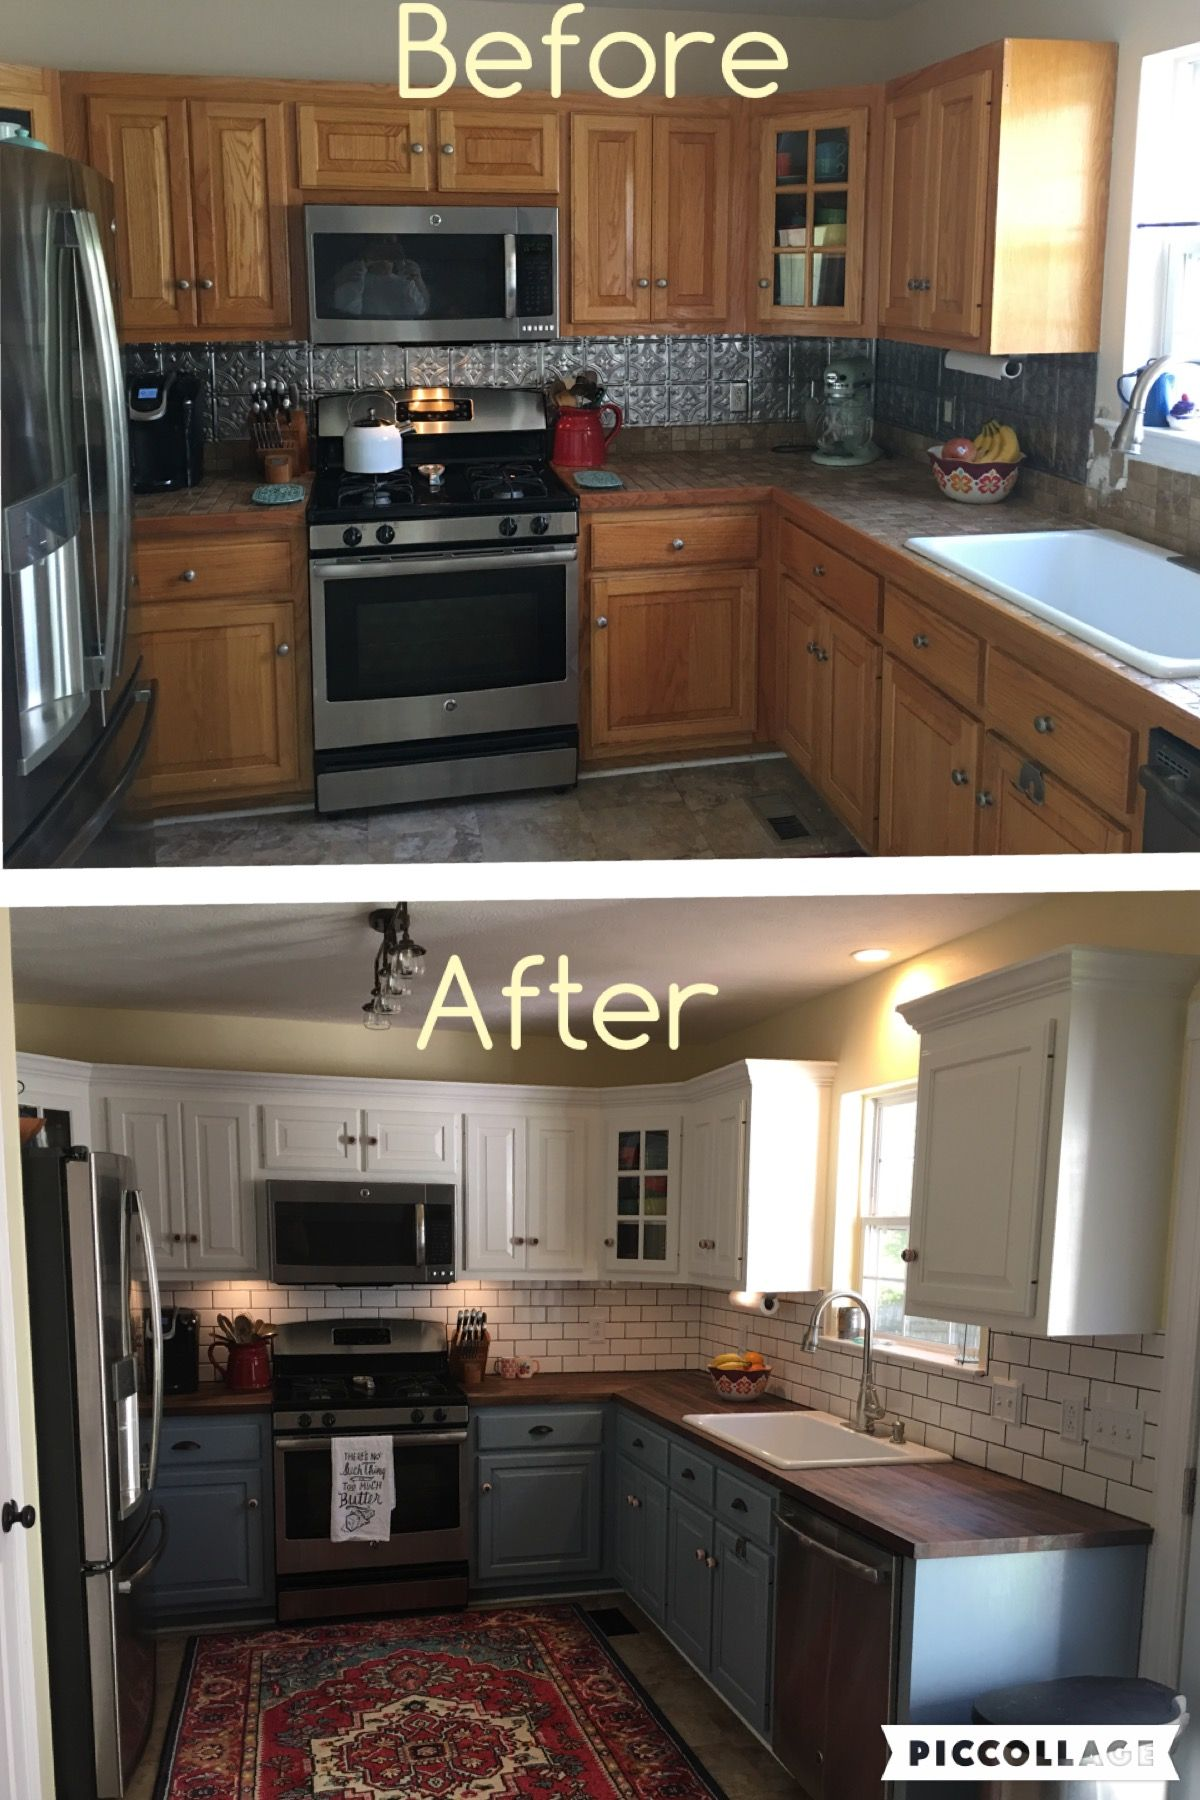 Kitchen Cabinet Paint Lowes two toned cabinets. valspar cabinet enamel from lowes = successful